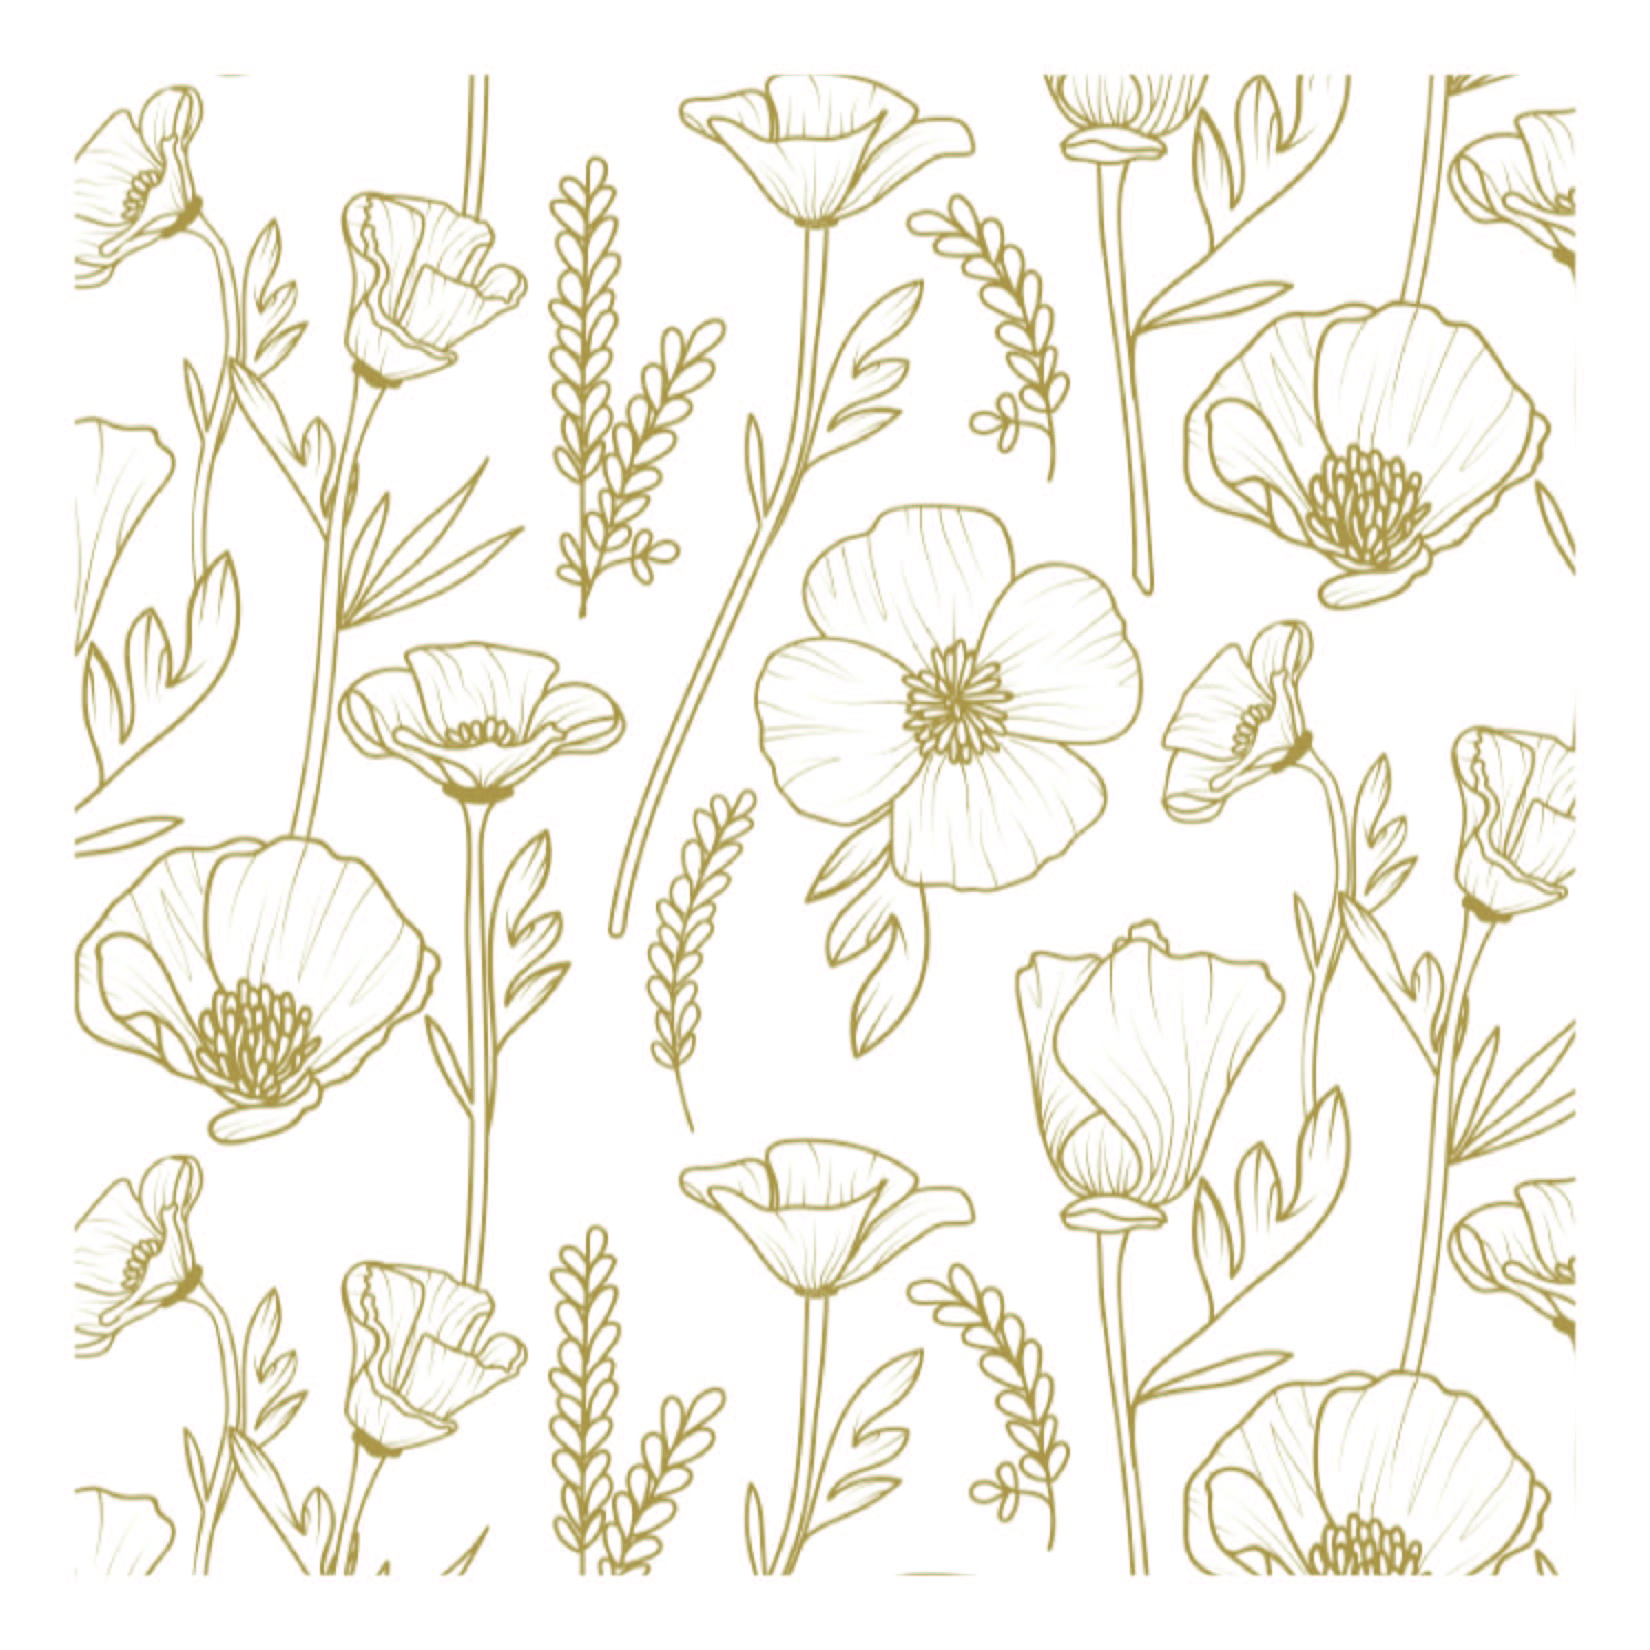 poppy illo sample-01.jpg